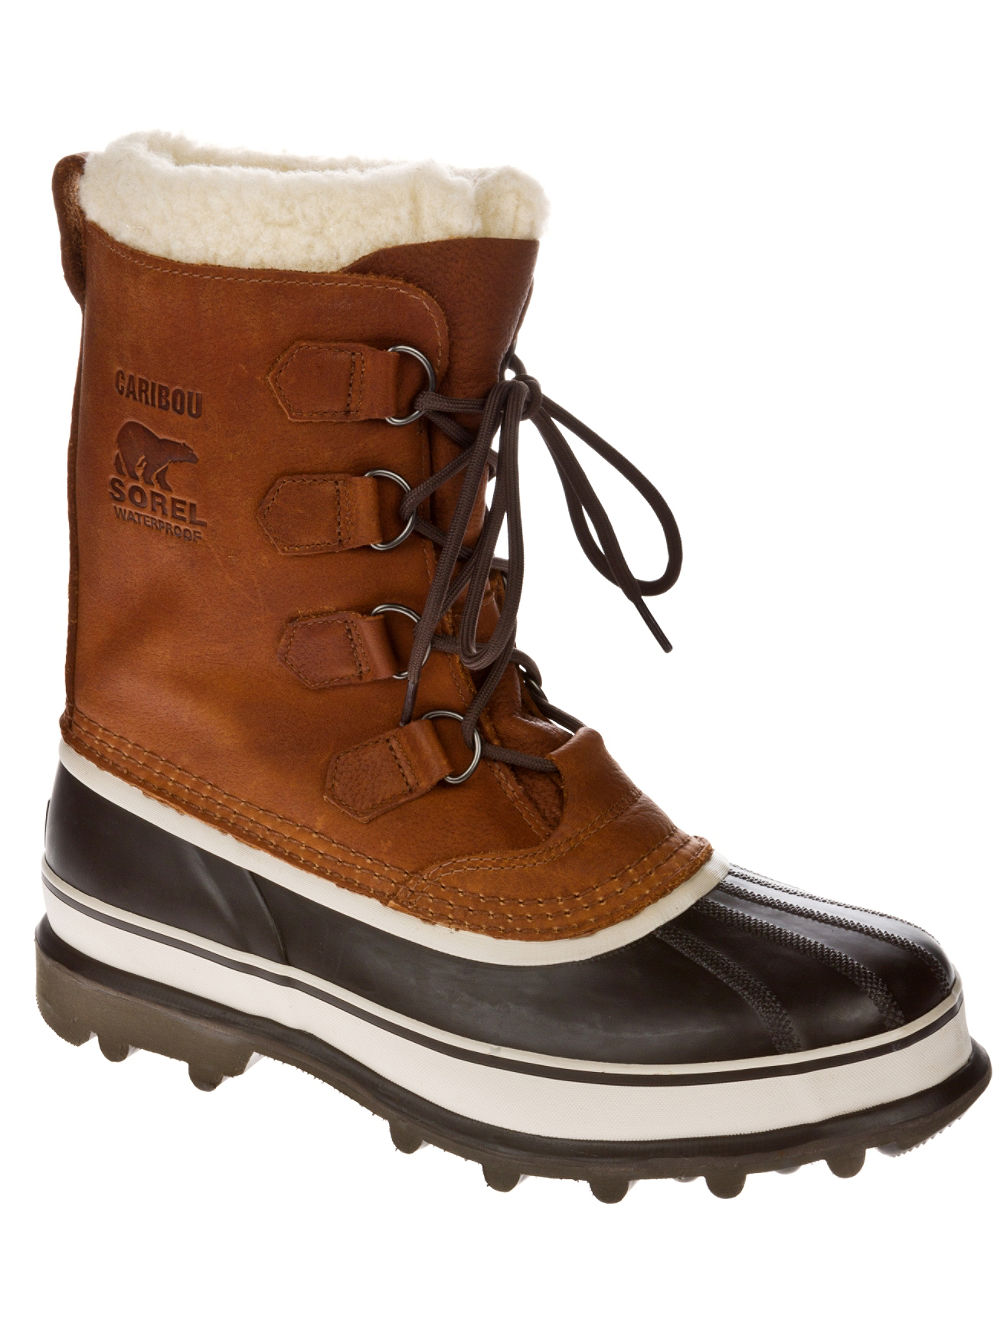 Caribou WL Boots